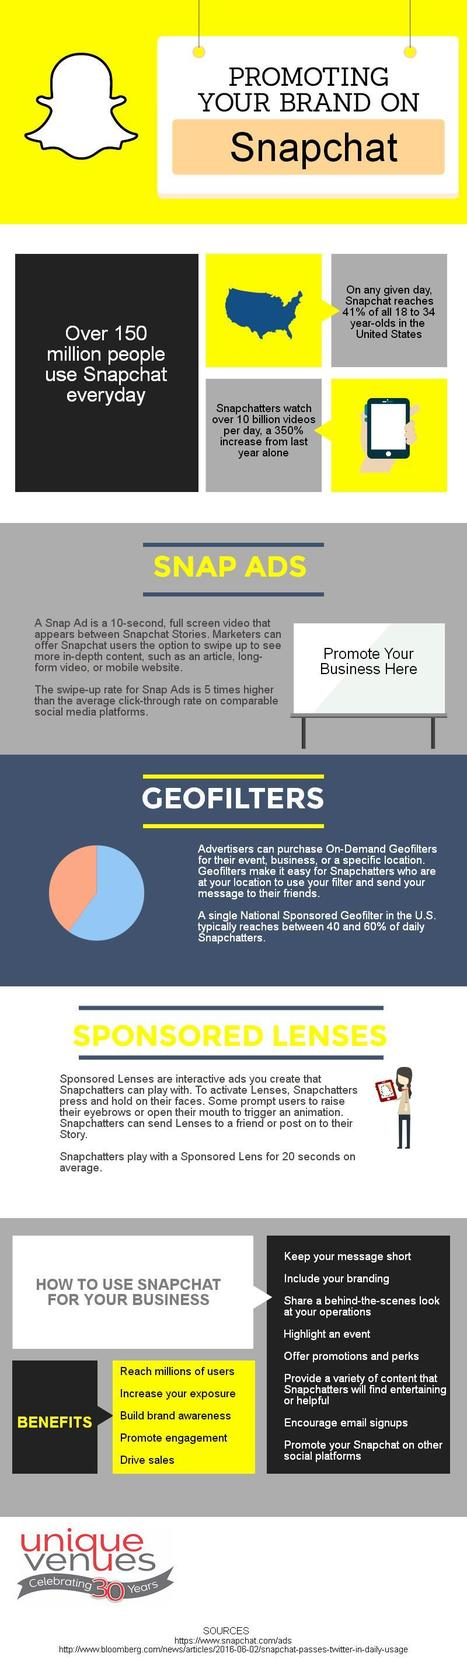 Promoting Your Brand on Snapchat Infographic | Unique Venues | Scoop.it